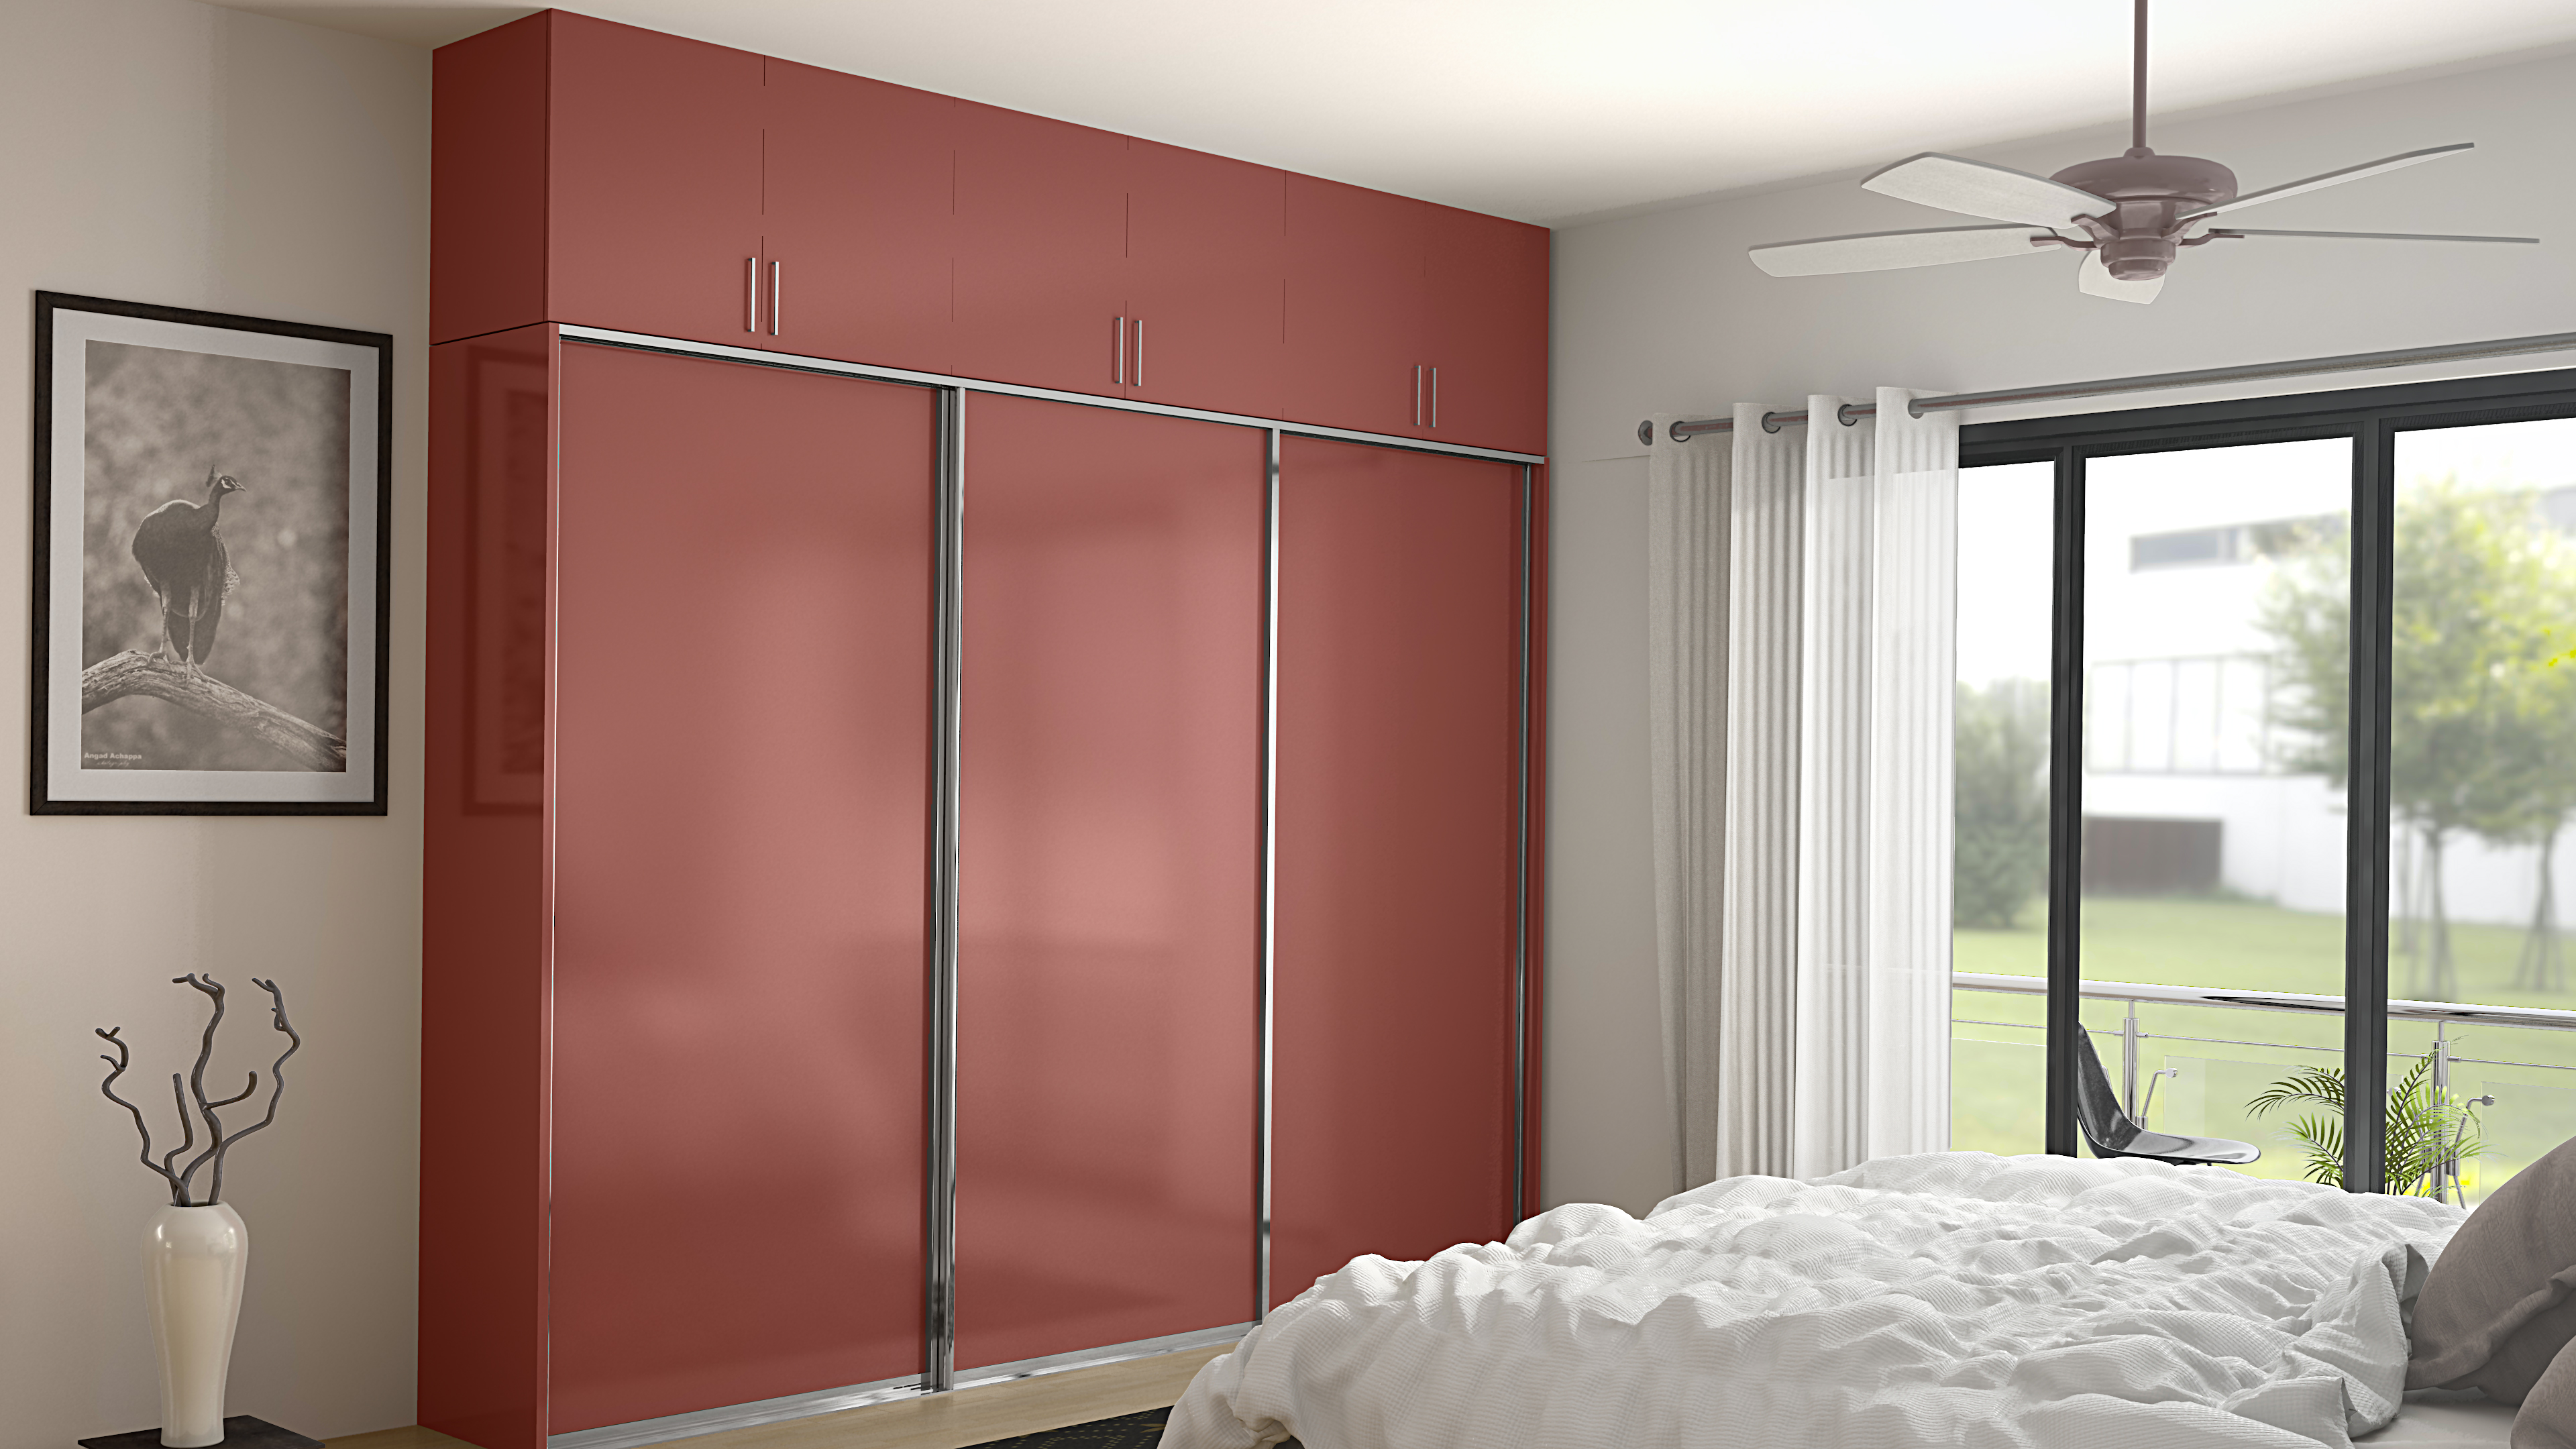 Add wardrobe designs to your room with this trendy sliding LVCNSWM.  a pink feeling